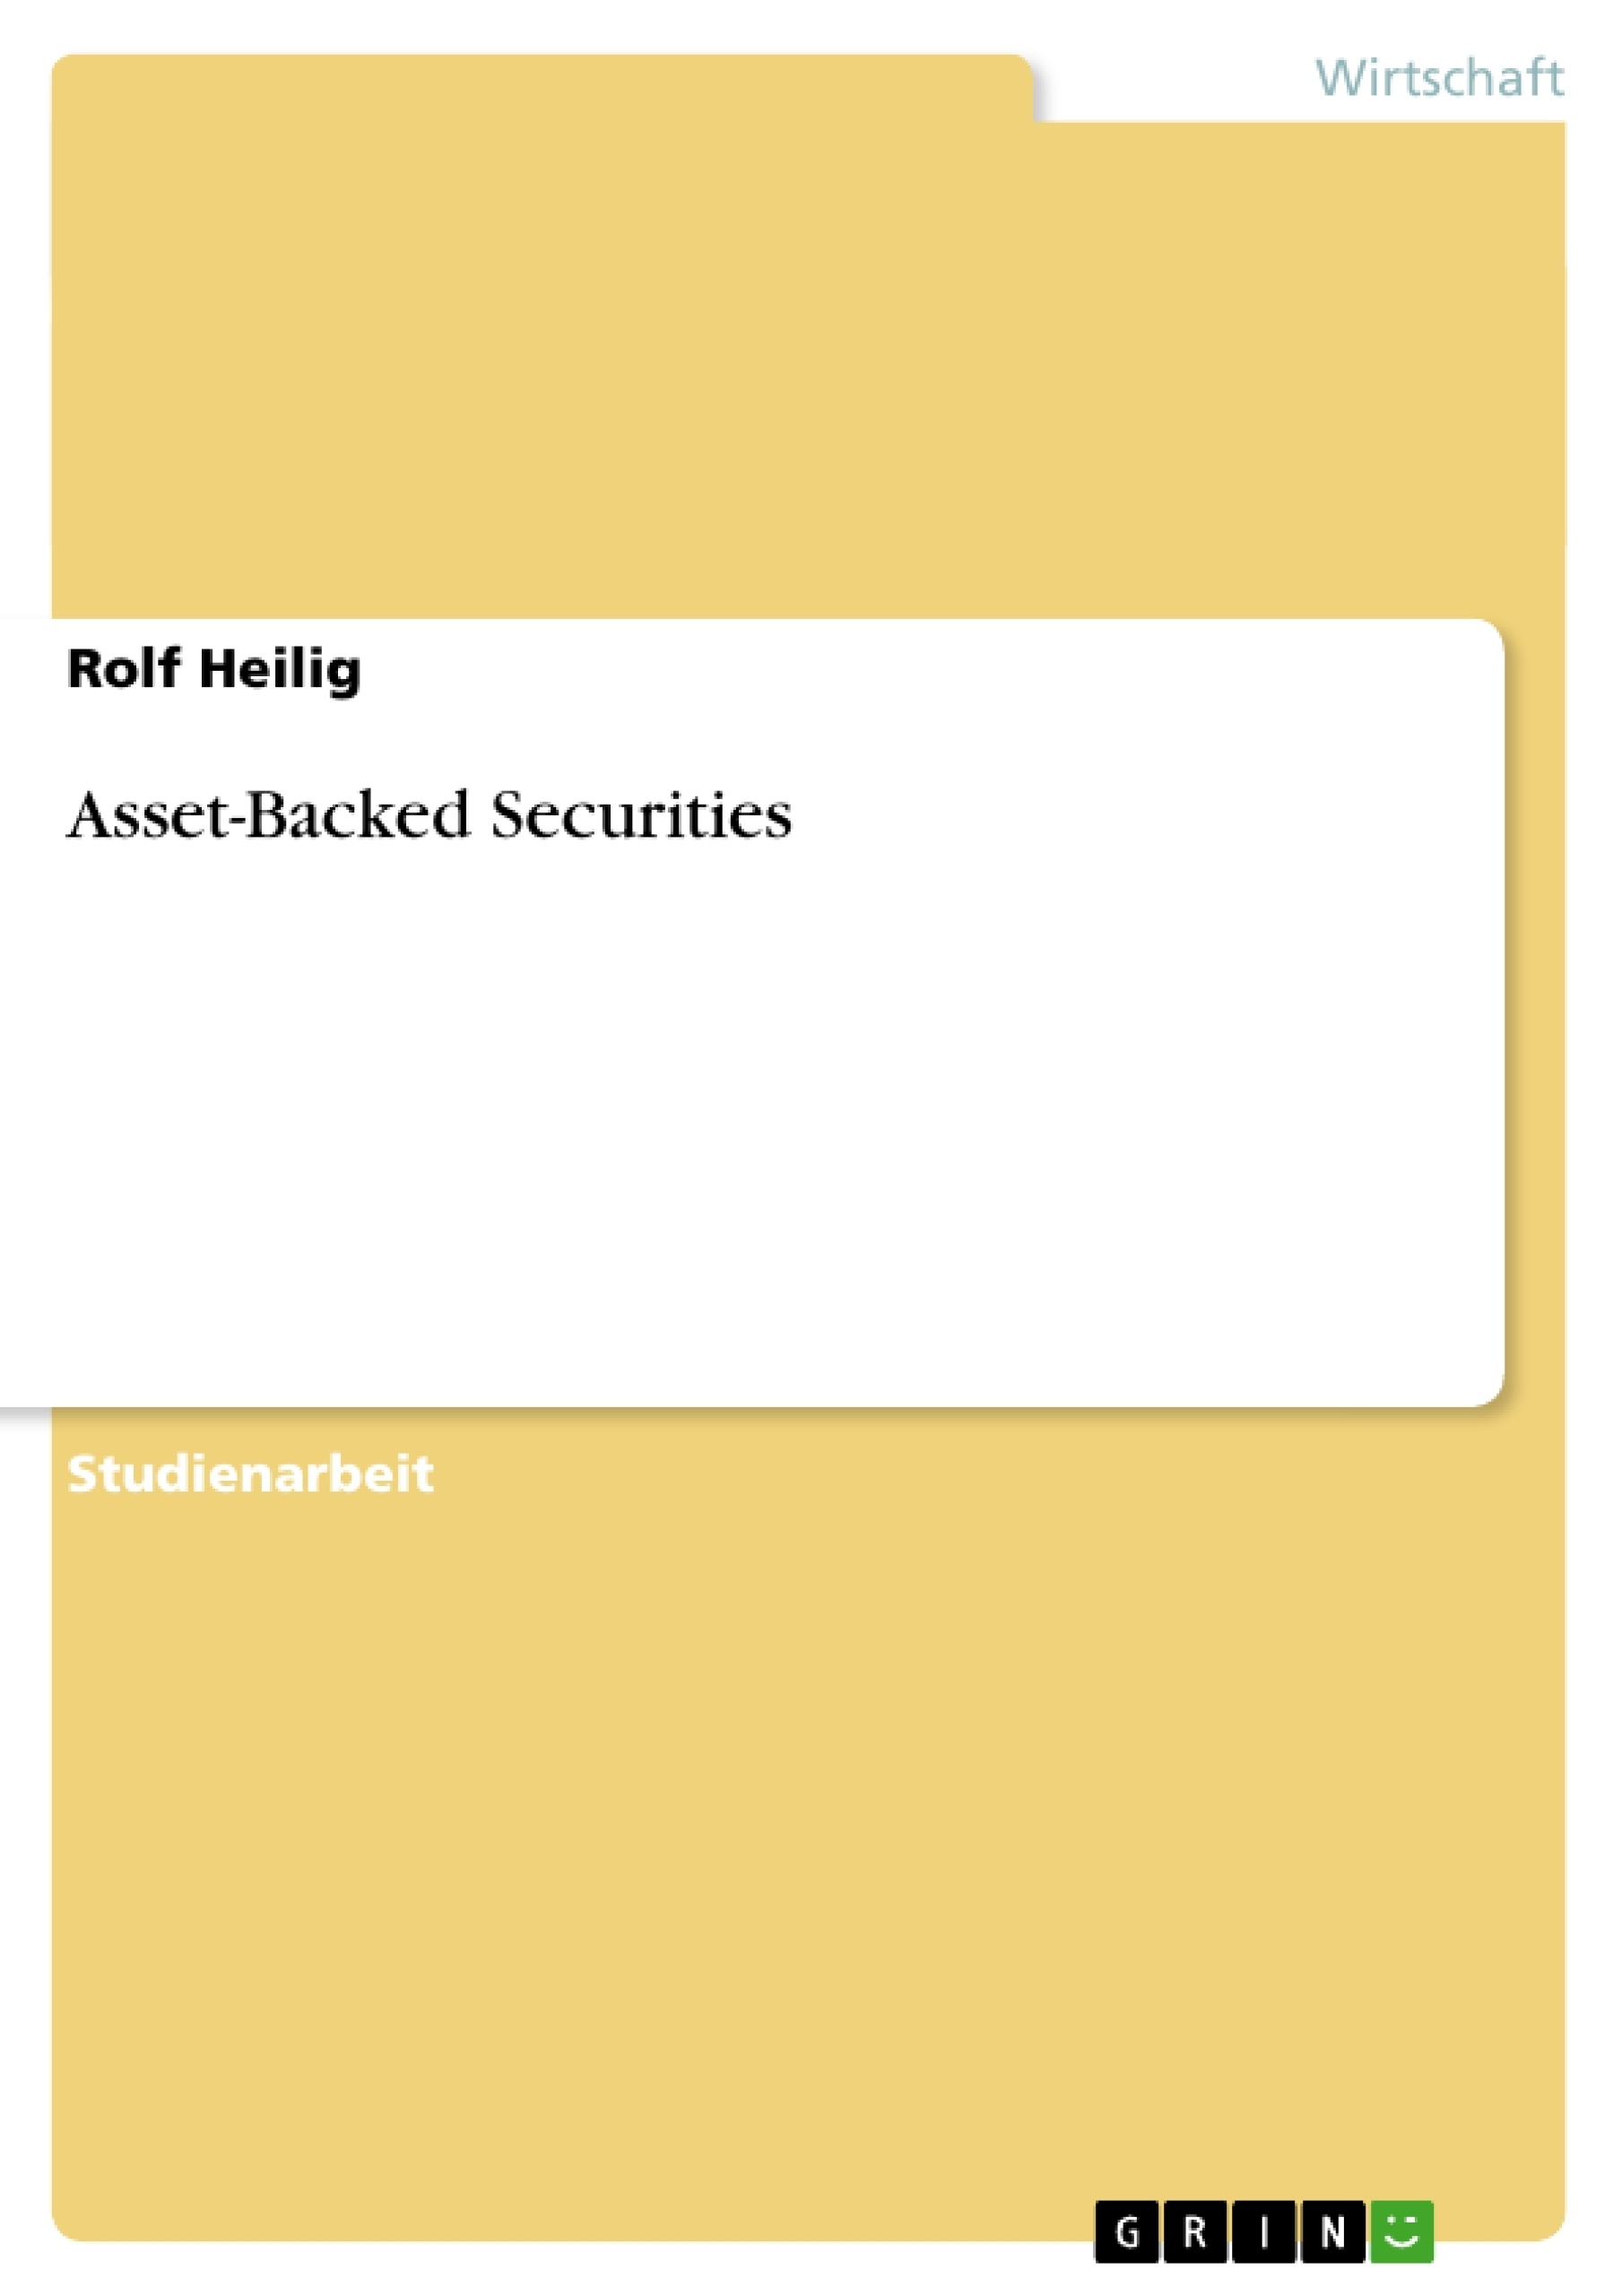 asset backed securities research paper Abcp (asset backed commercial paper) abs (asset backed security) abspp (asset backed securities purchase programme) asset backed commercial paper (abcp) siehe.